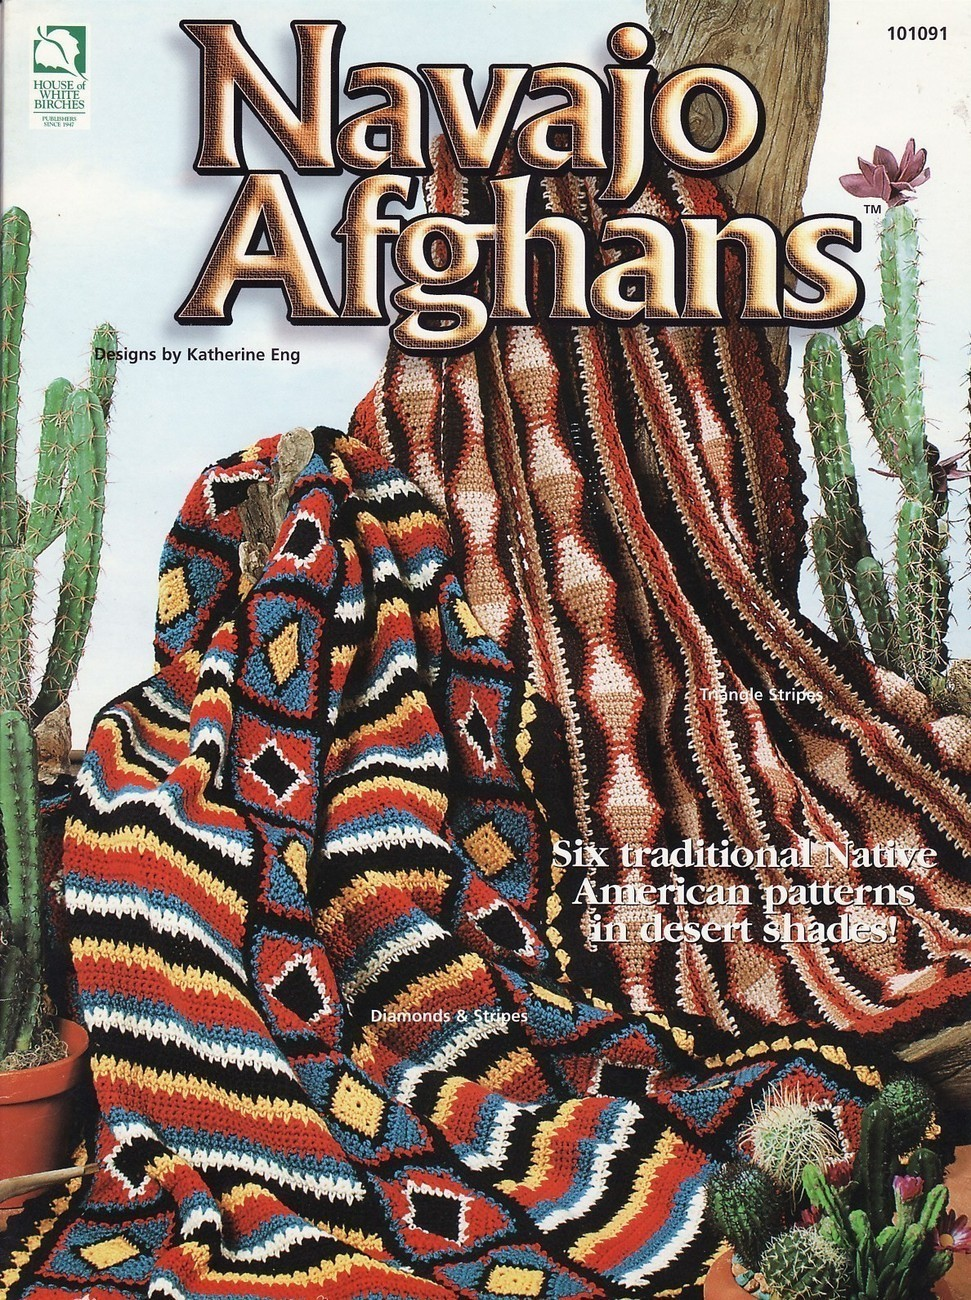 Navajo Afghan Crochet Pattern – Download Indian Afghan Navajo